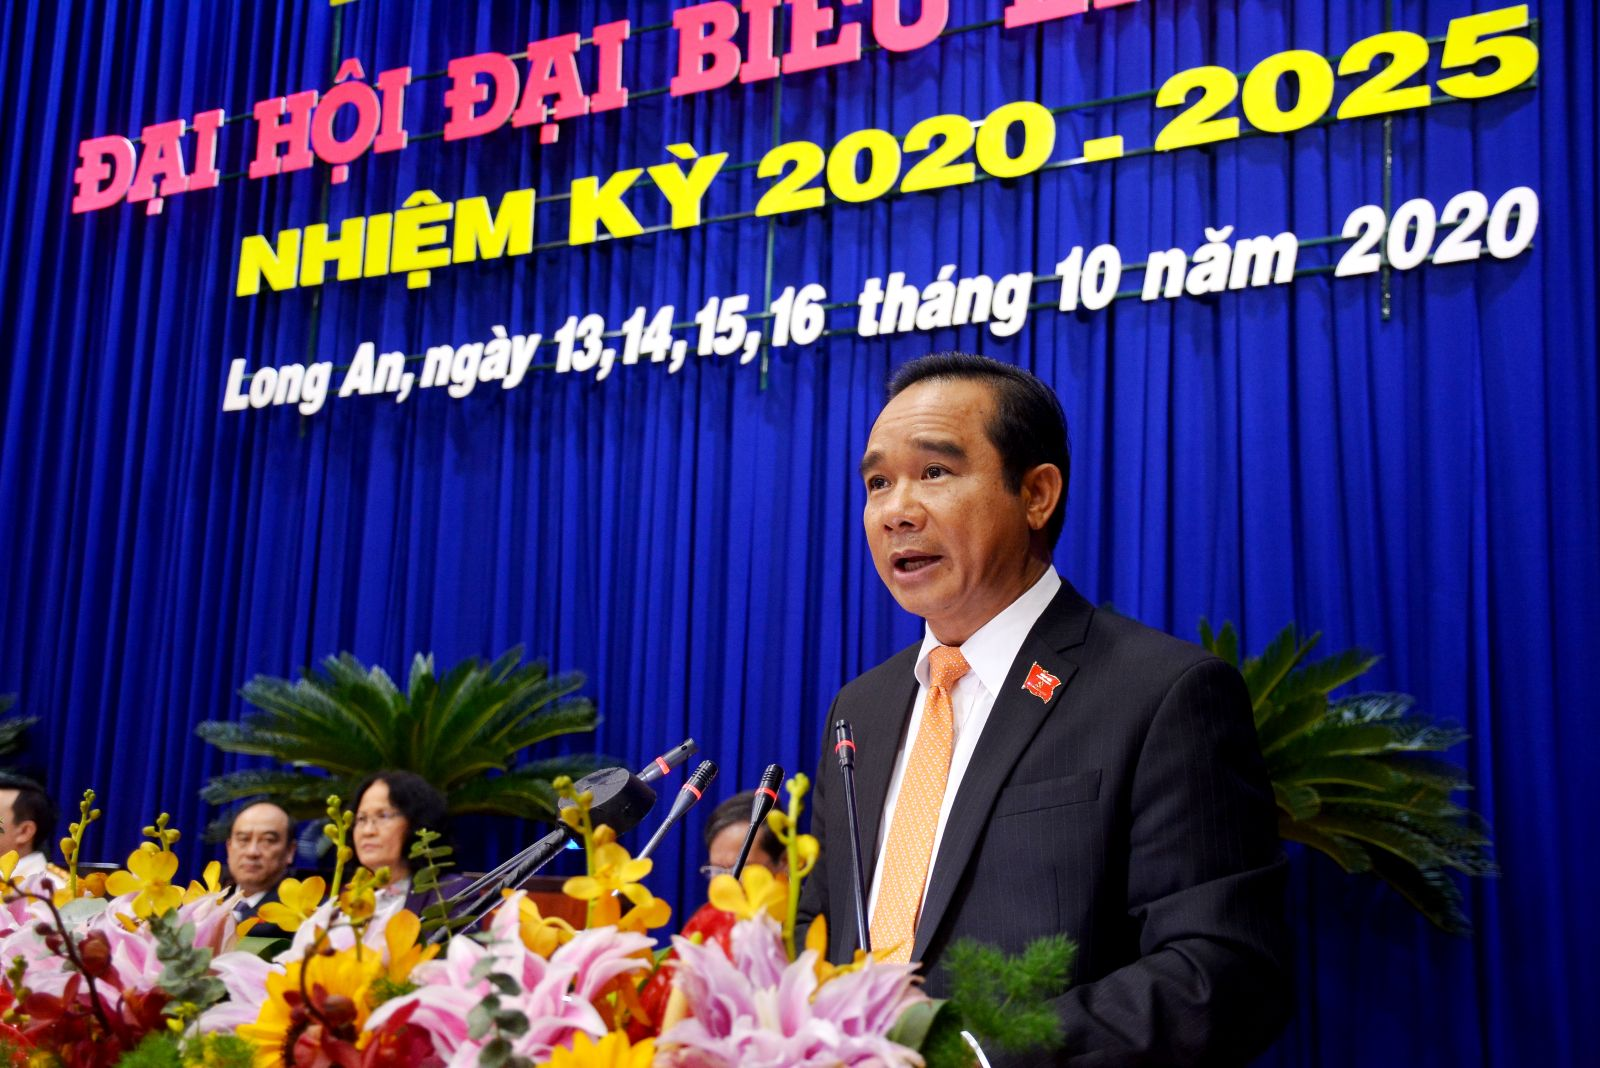 Comrade Nguyen Van Duoc appointed the Secretary of Long An Party Committee for the term 2020-2025